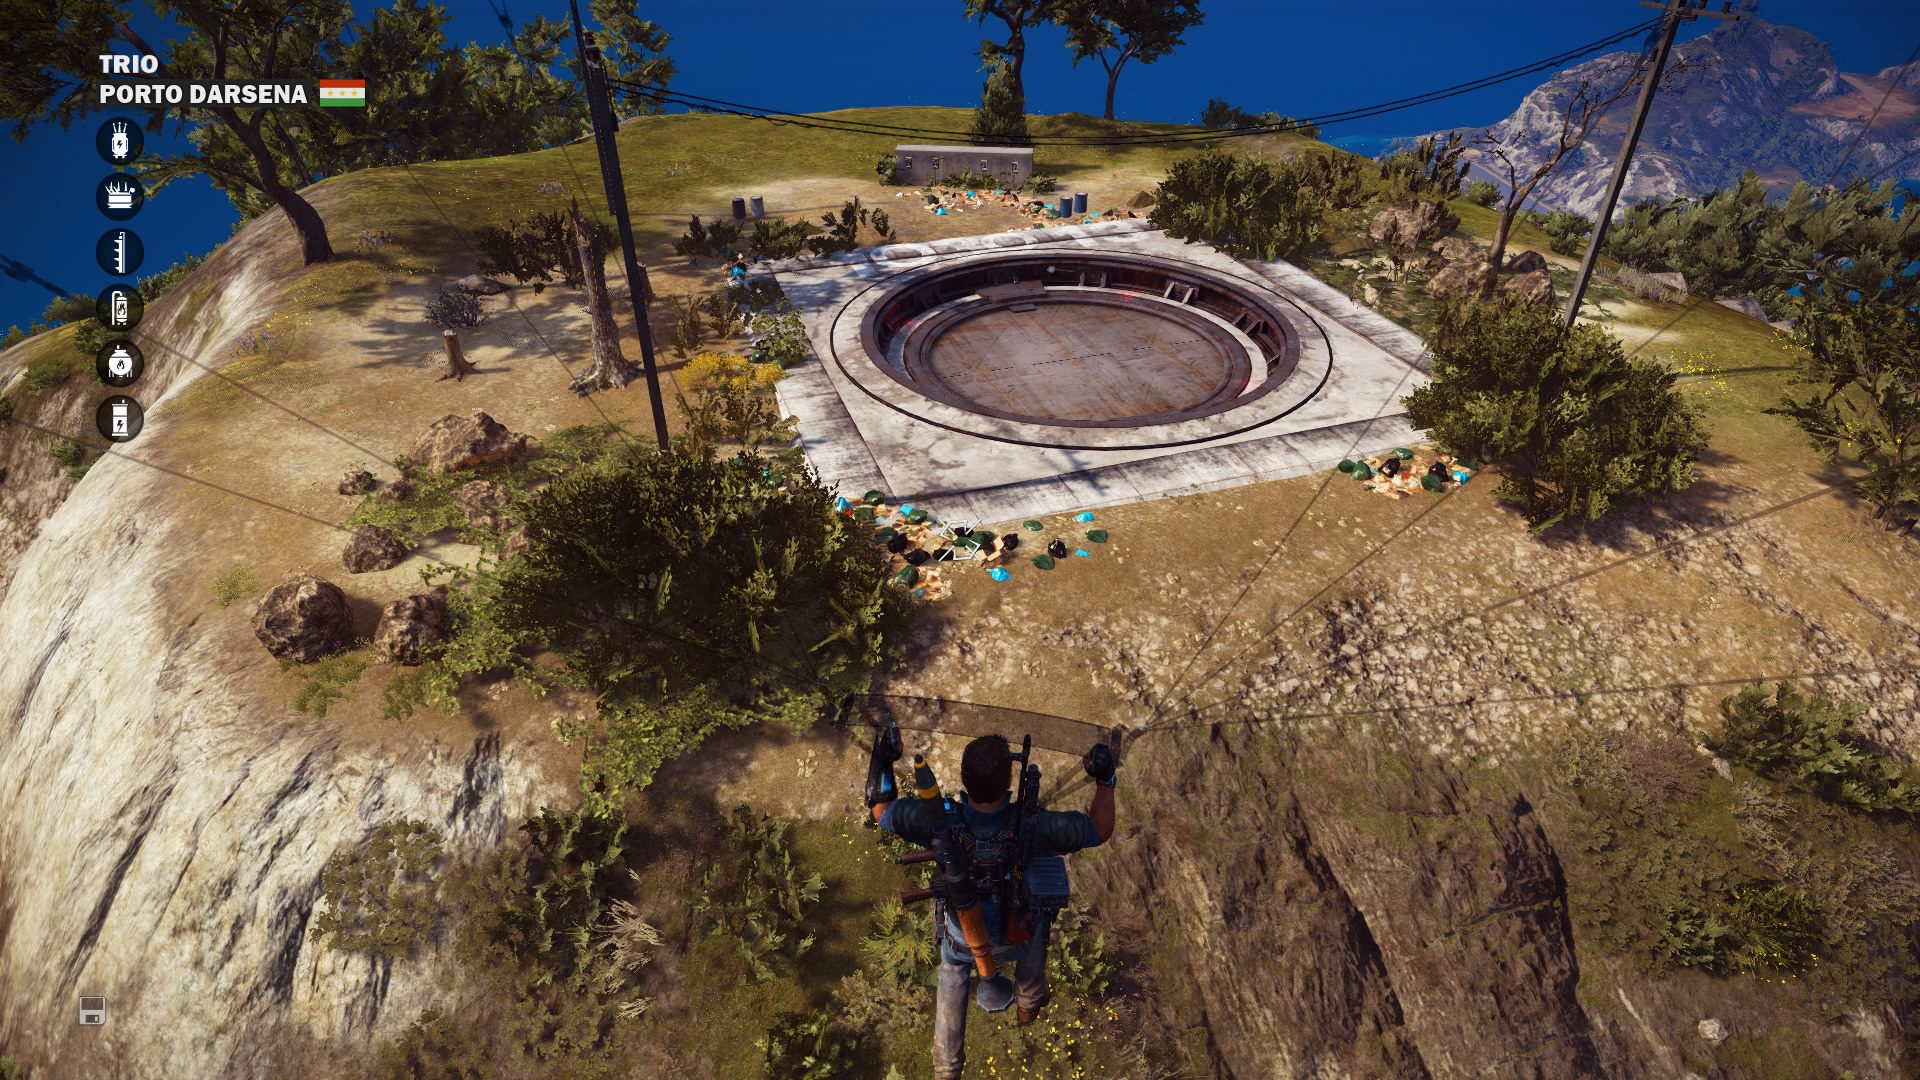 moon base just cause 4 location - photo #22